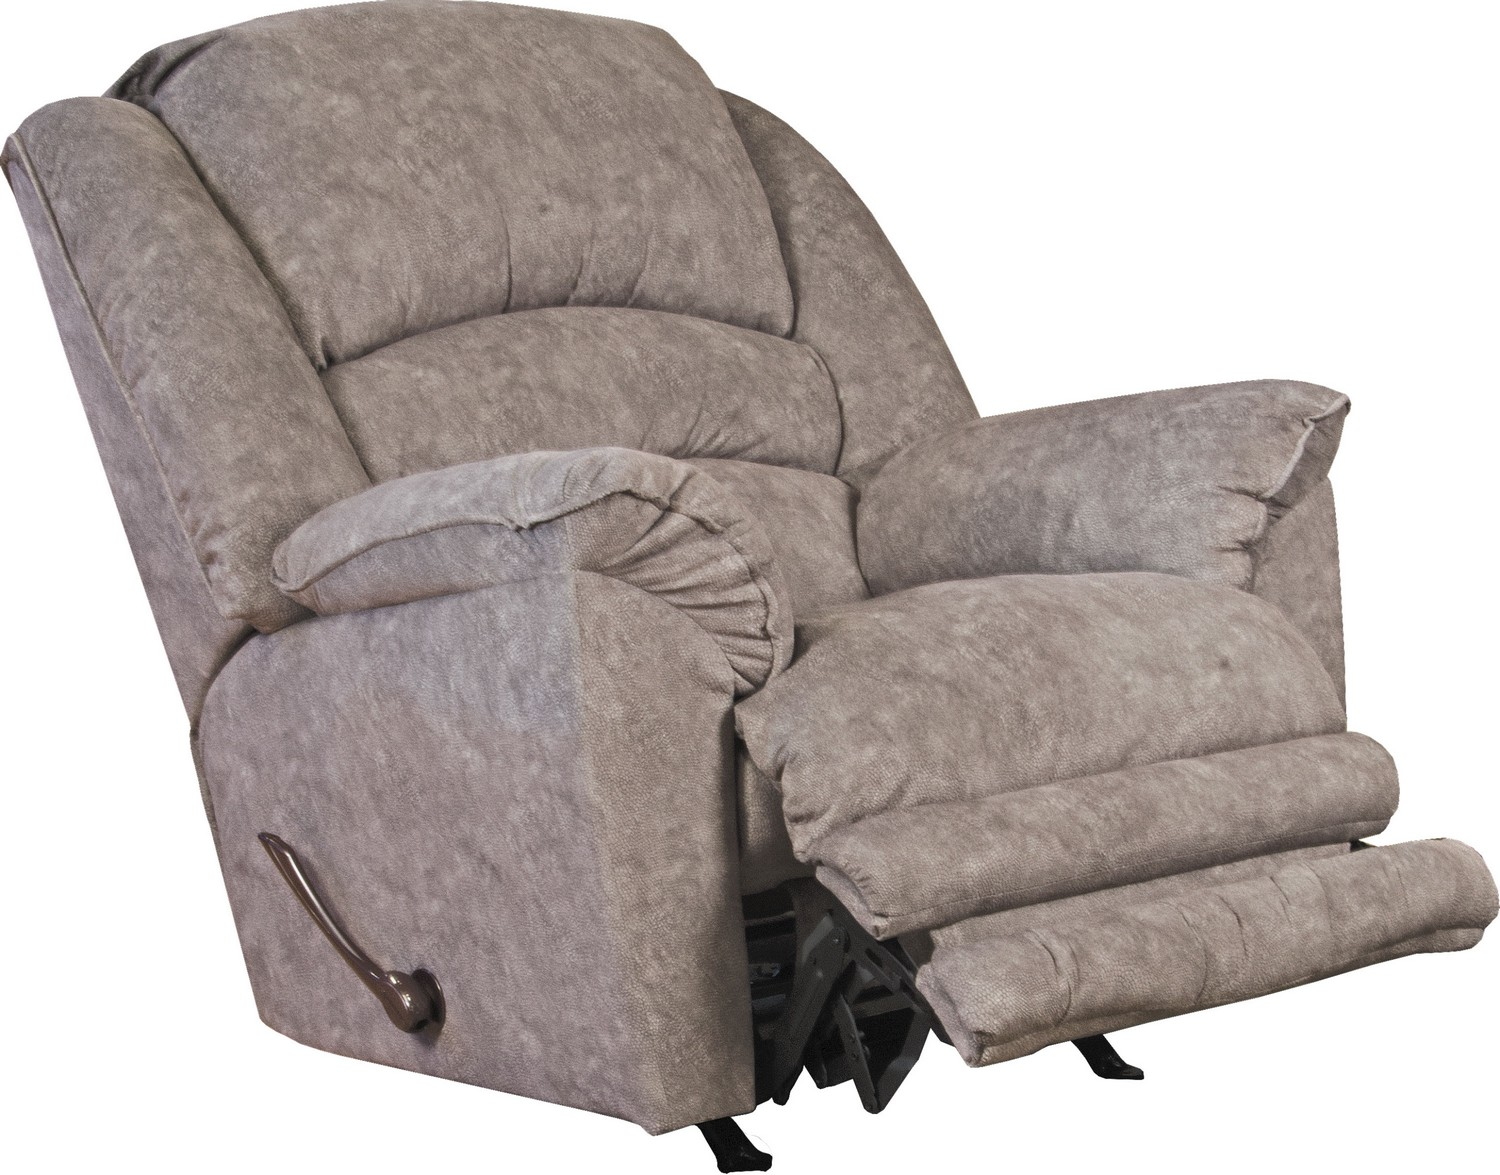 CatNapper Rialto Power Lay Flat Recliner with Extended Ottoman - Steel